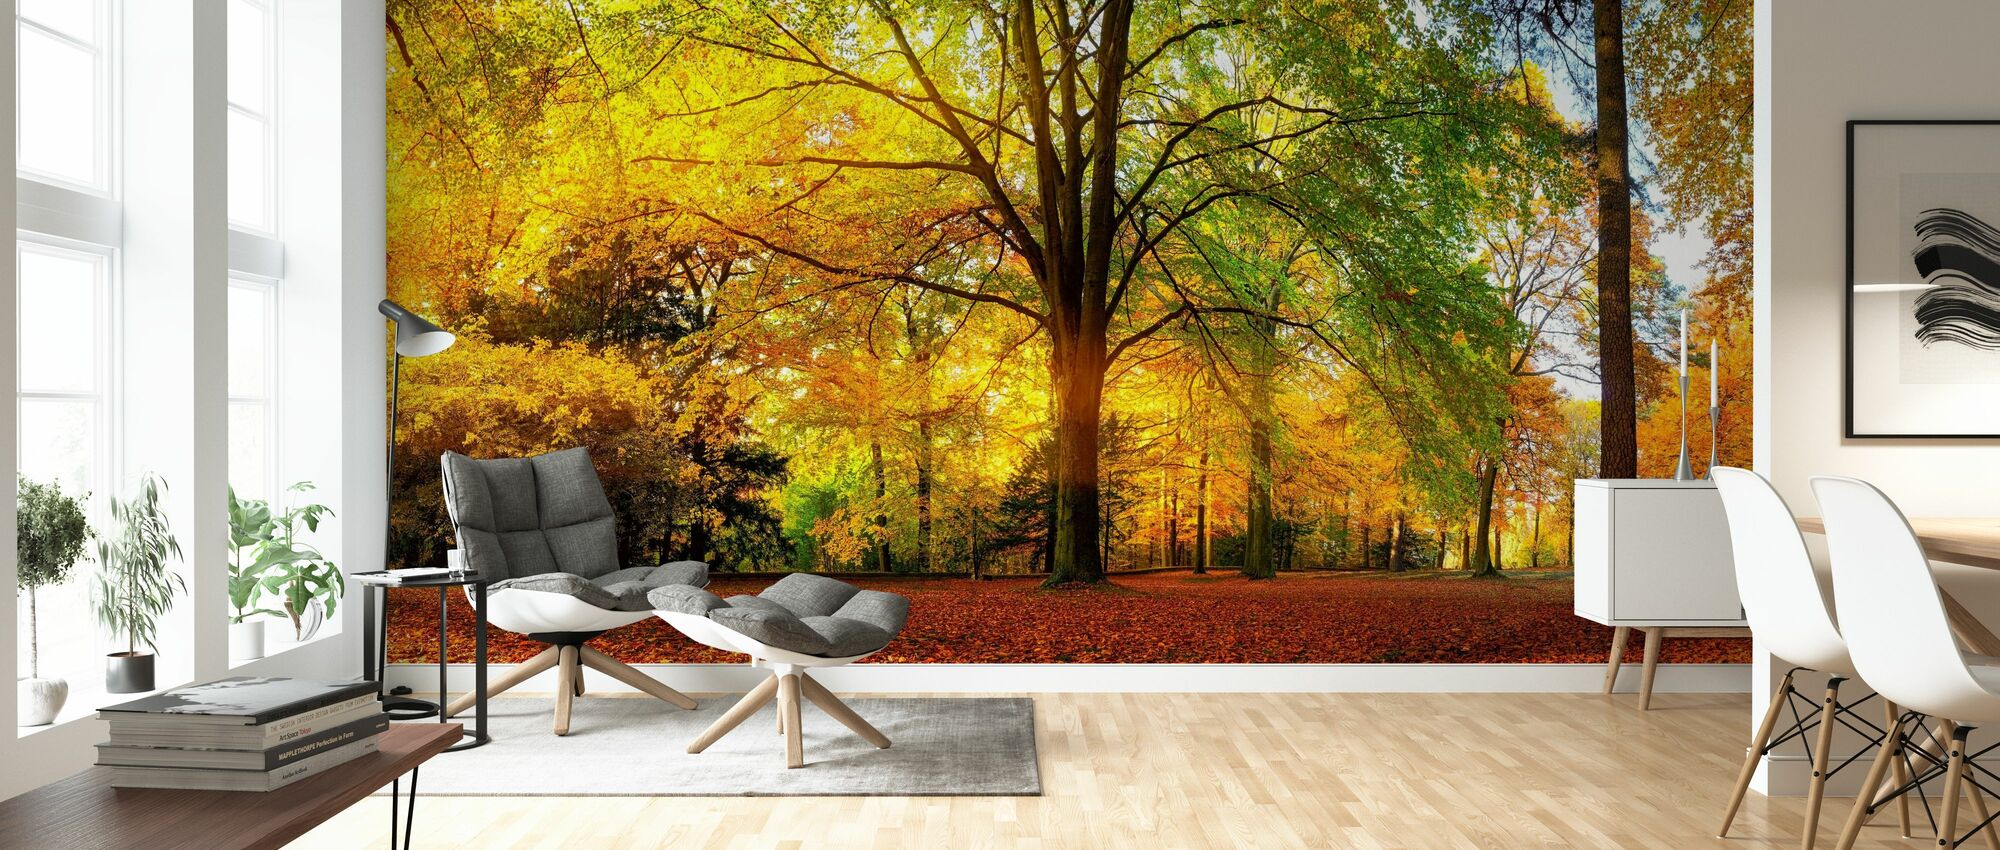 Forest in Autumn - Wallpaper - Living Room